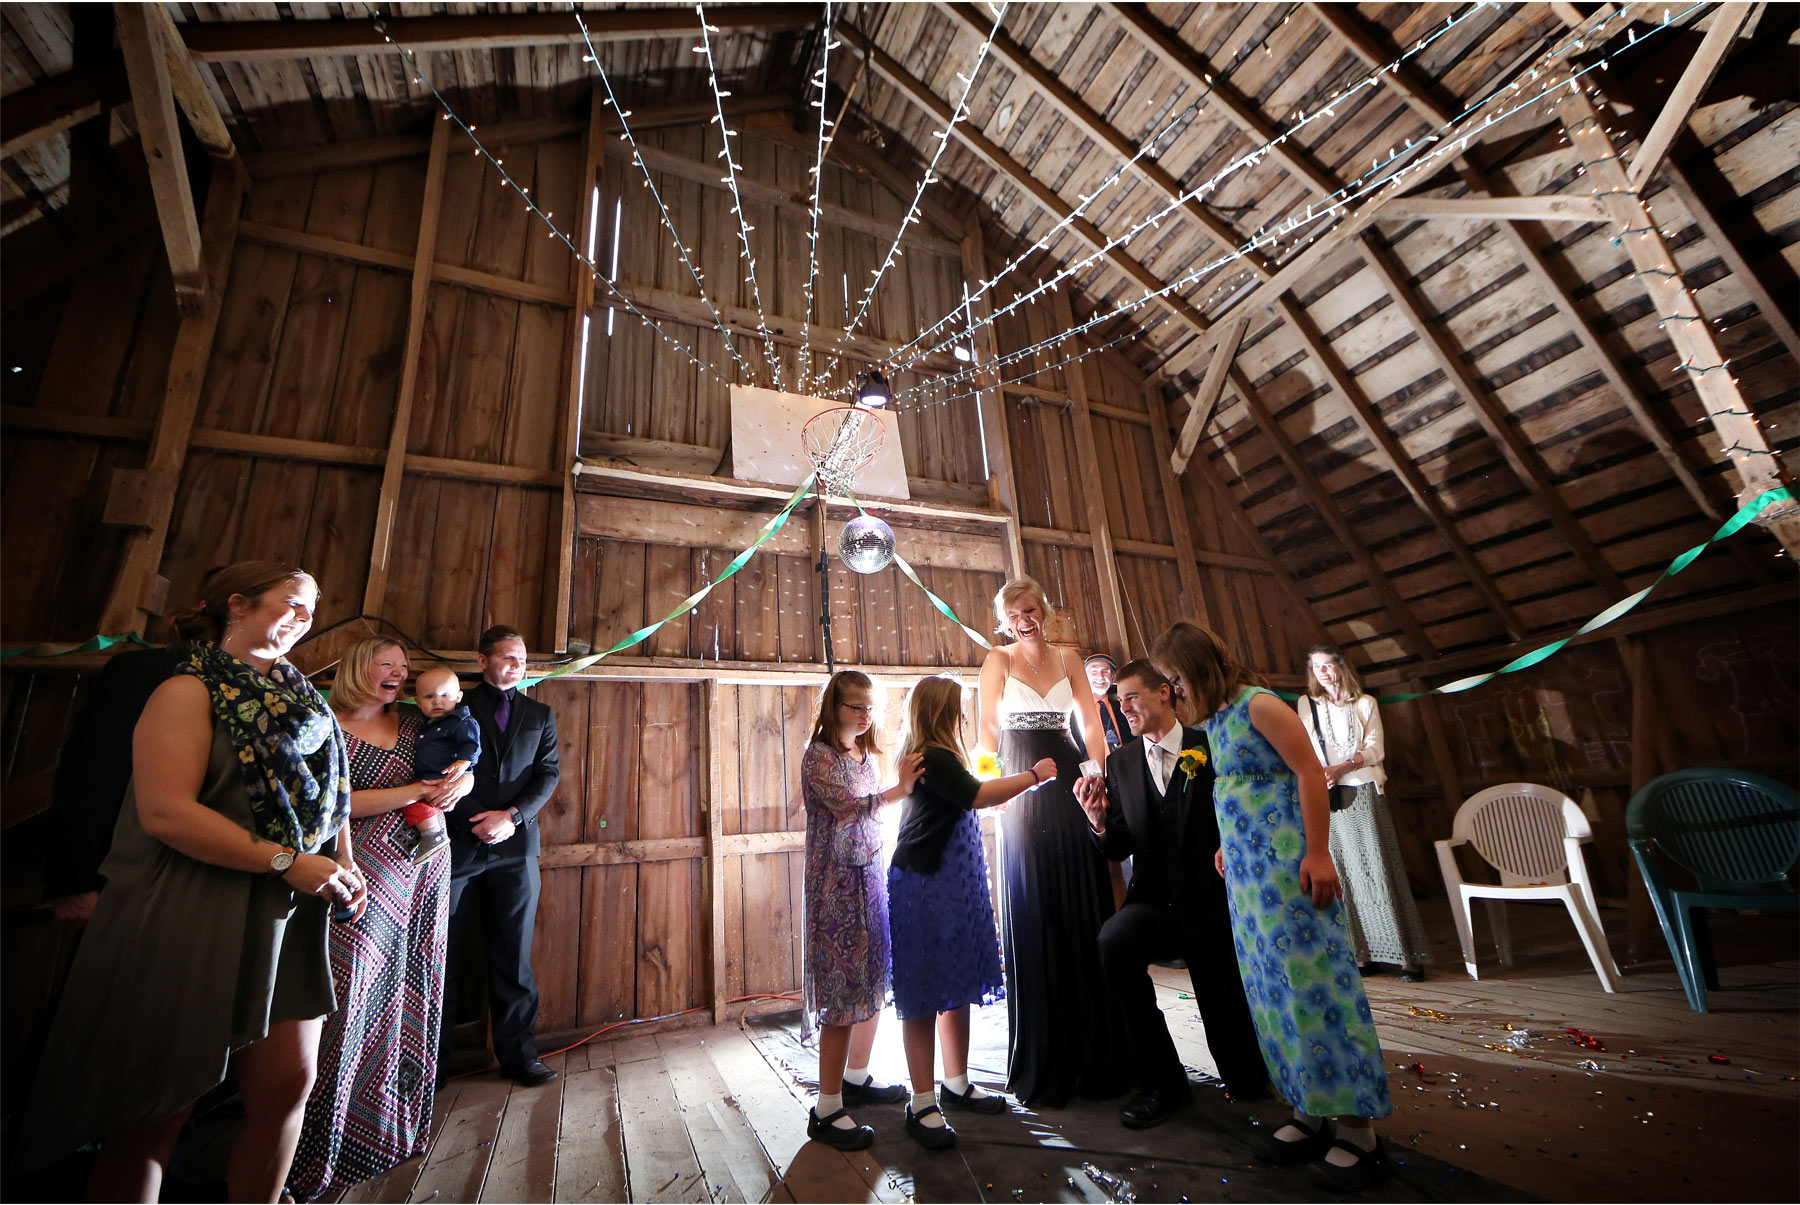 14-Vick-Photography-Proposal-Session-Engagement-Family-Farm-Rings-Barn-Kasie-and-Josh.jpg